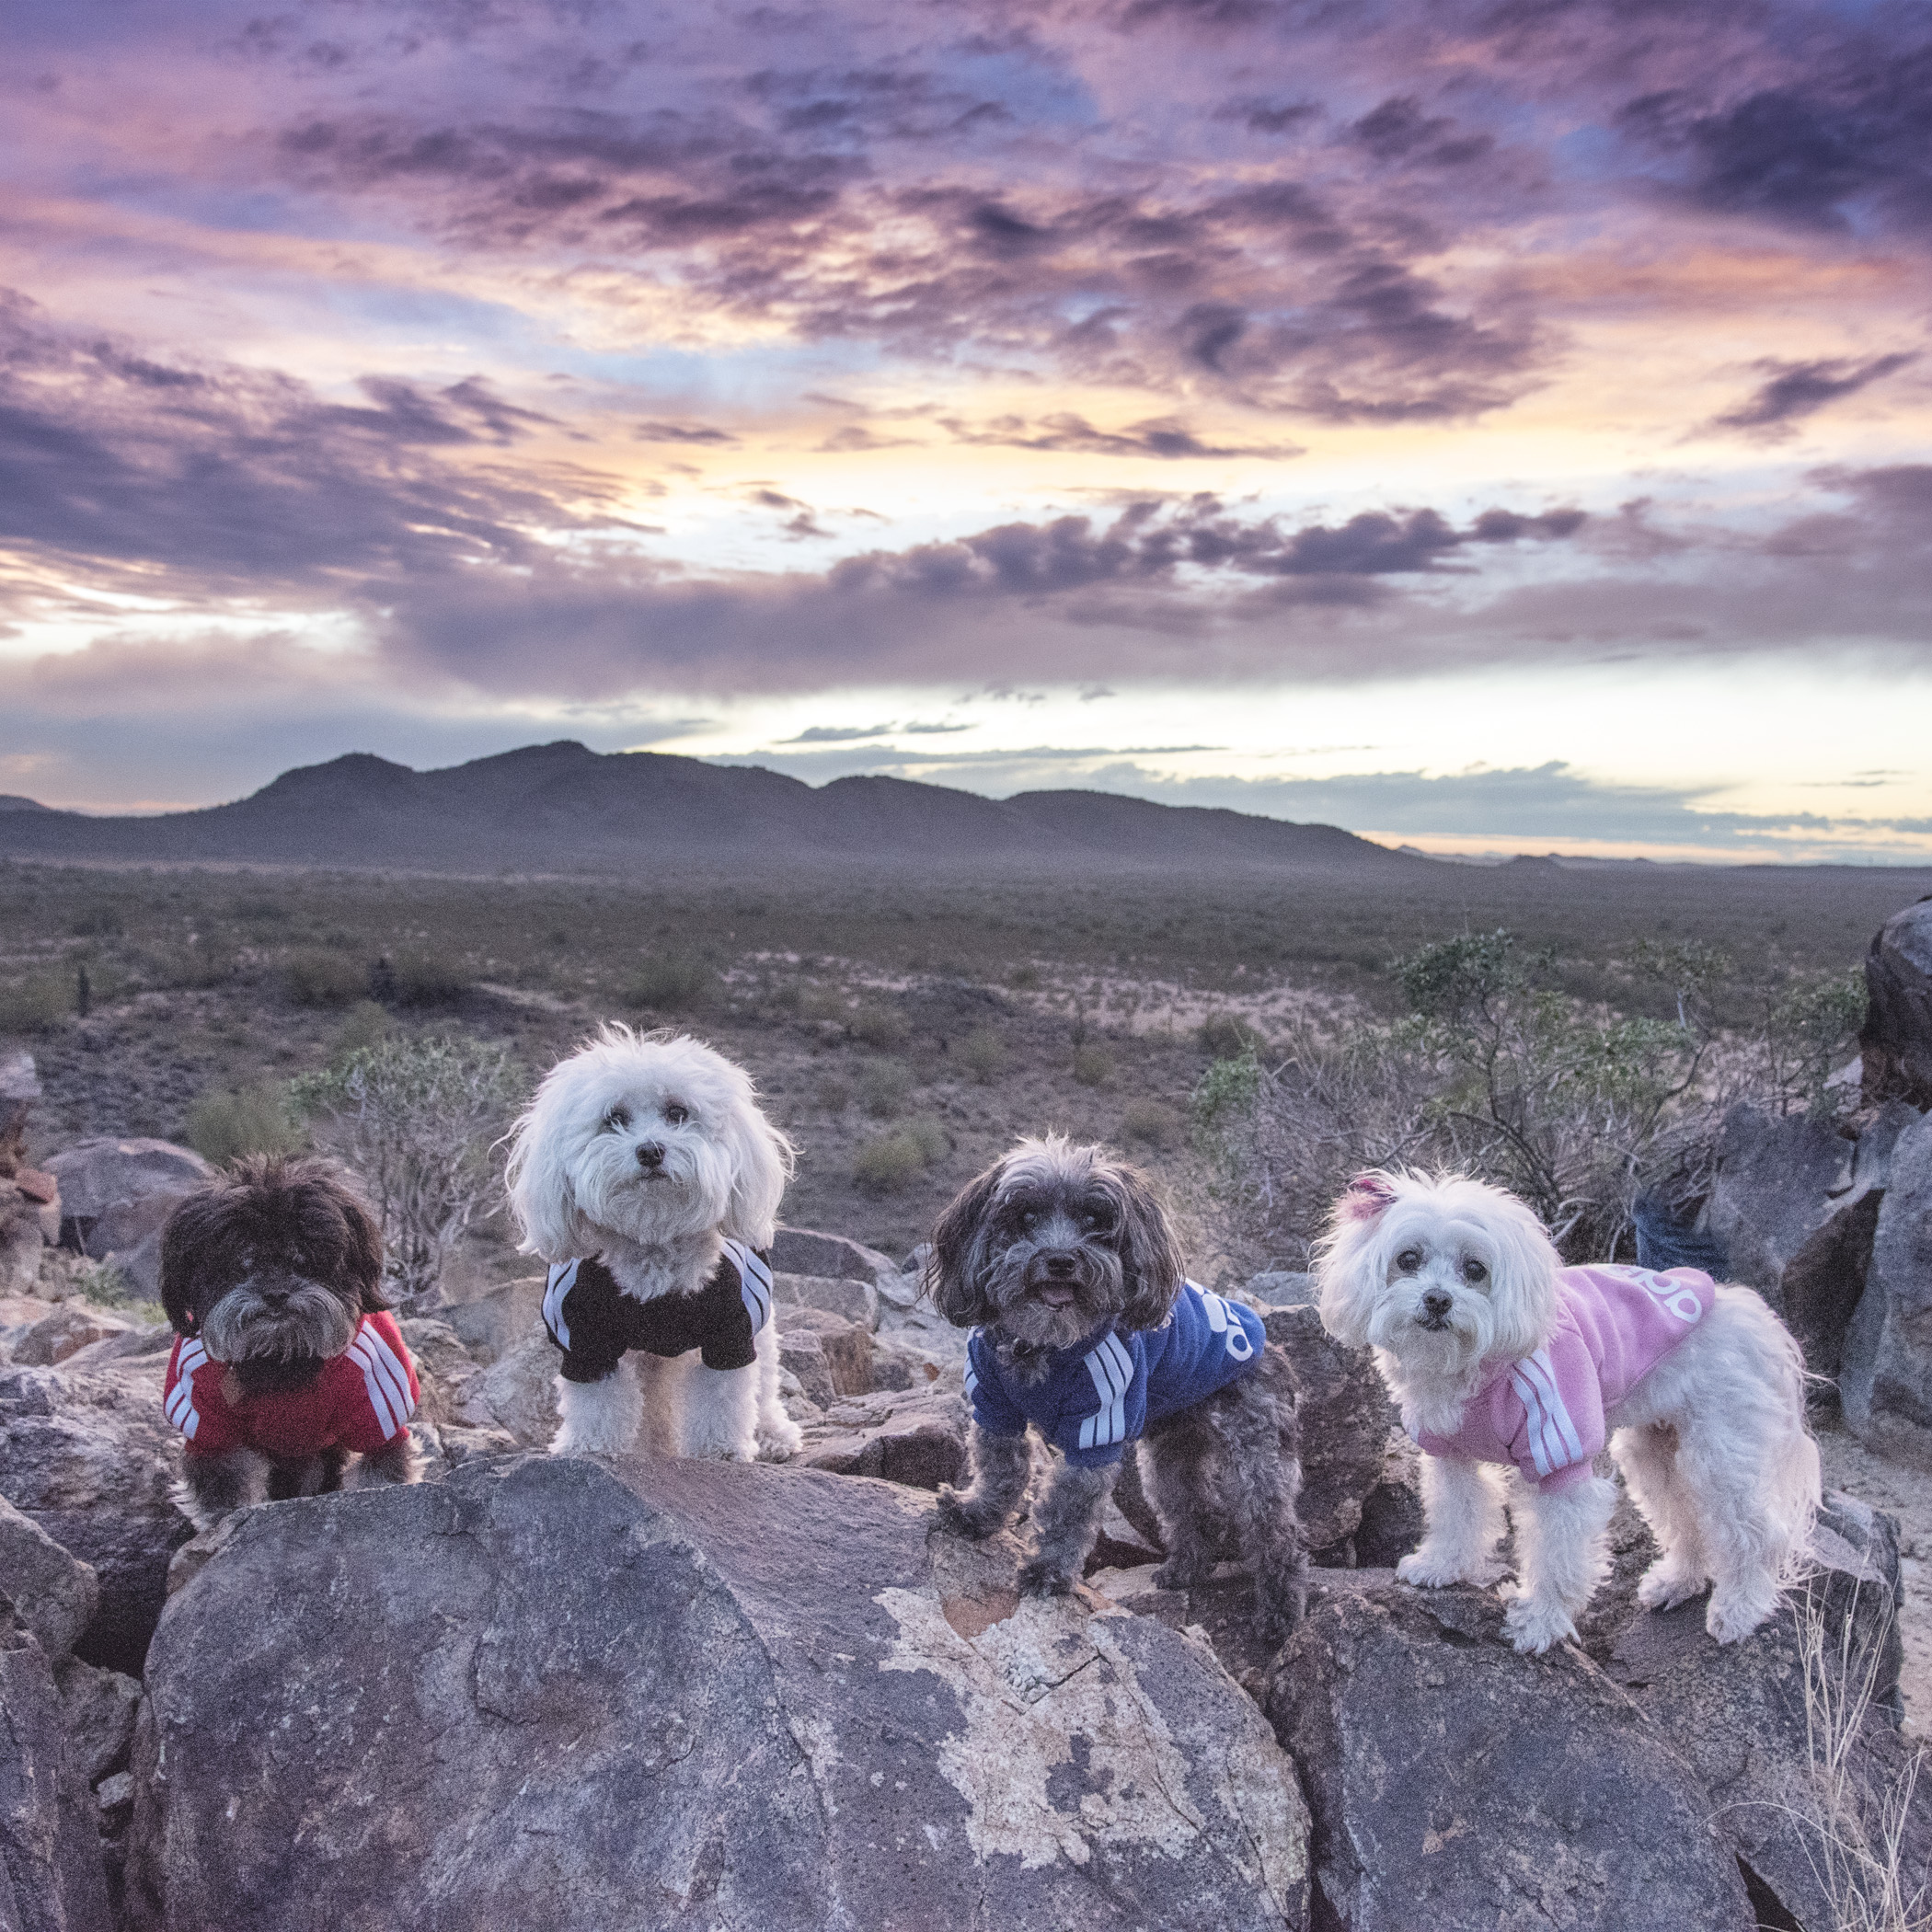 Of course, the first thing we did when they got to town was to take them to watch one of our beautiful Arizona sunsets!